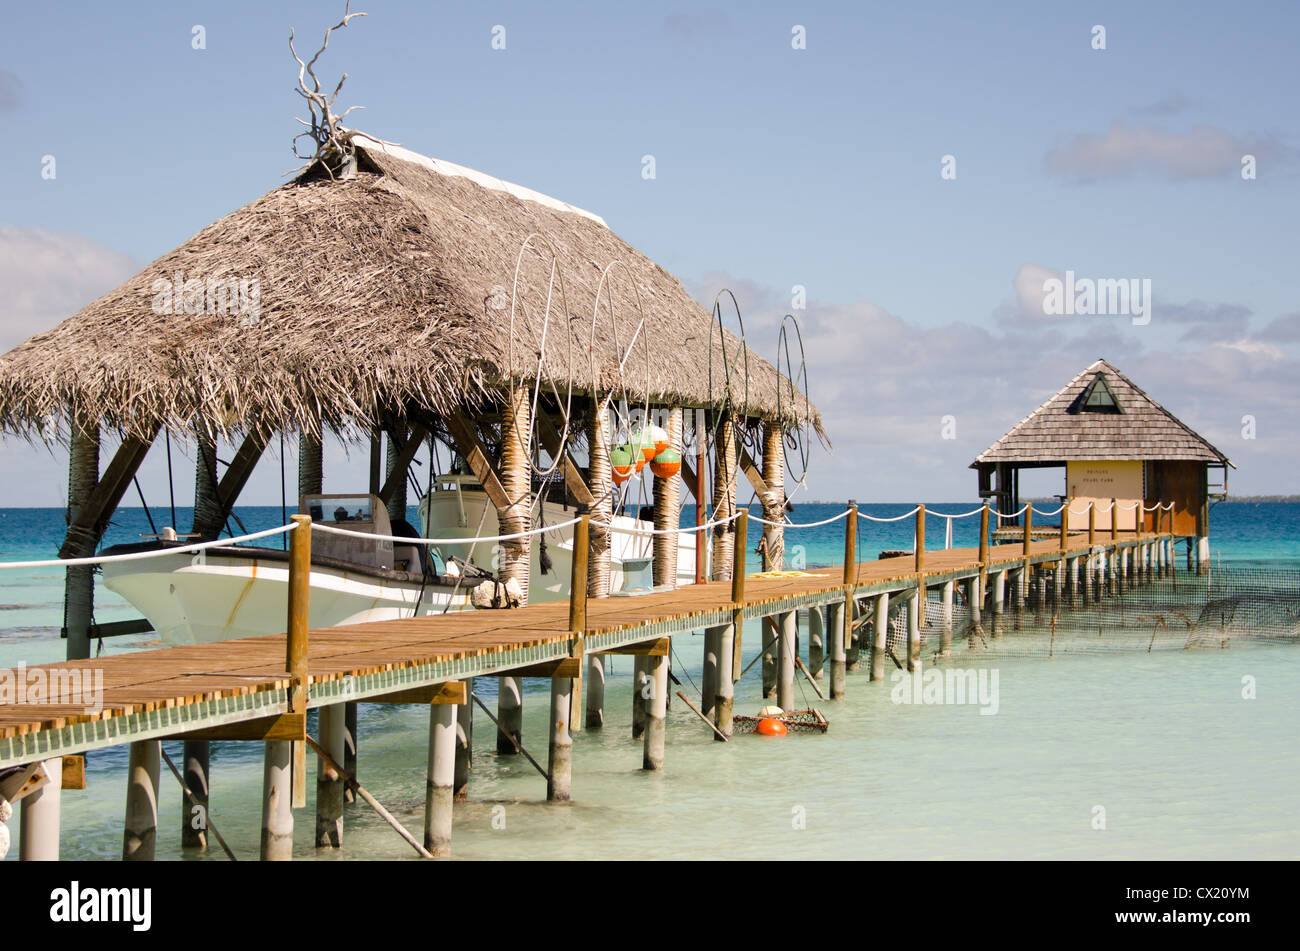 A Pearl Farm at the Havaiki Resort in Fakarava in French Polynesia - Stock Image